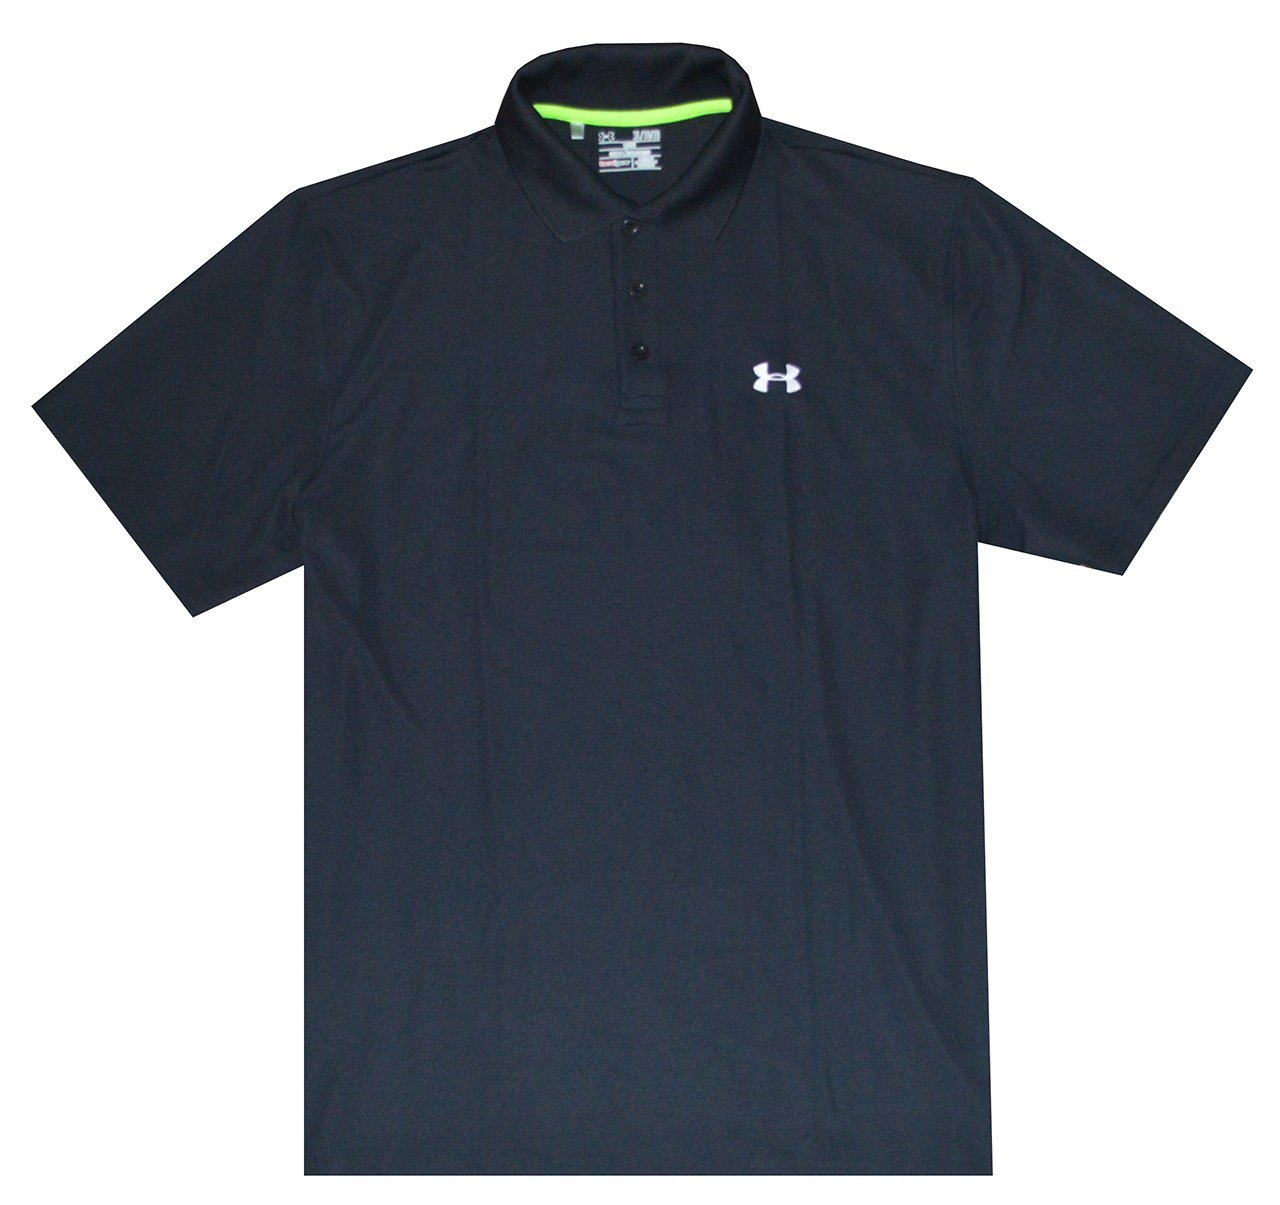 3347b041 Amazon.com : Under Armour Men's Performance Polo : Clothing